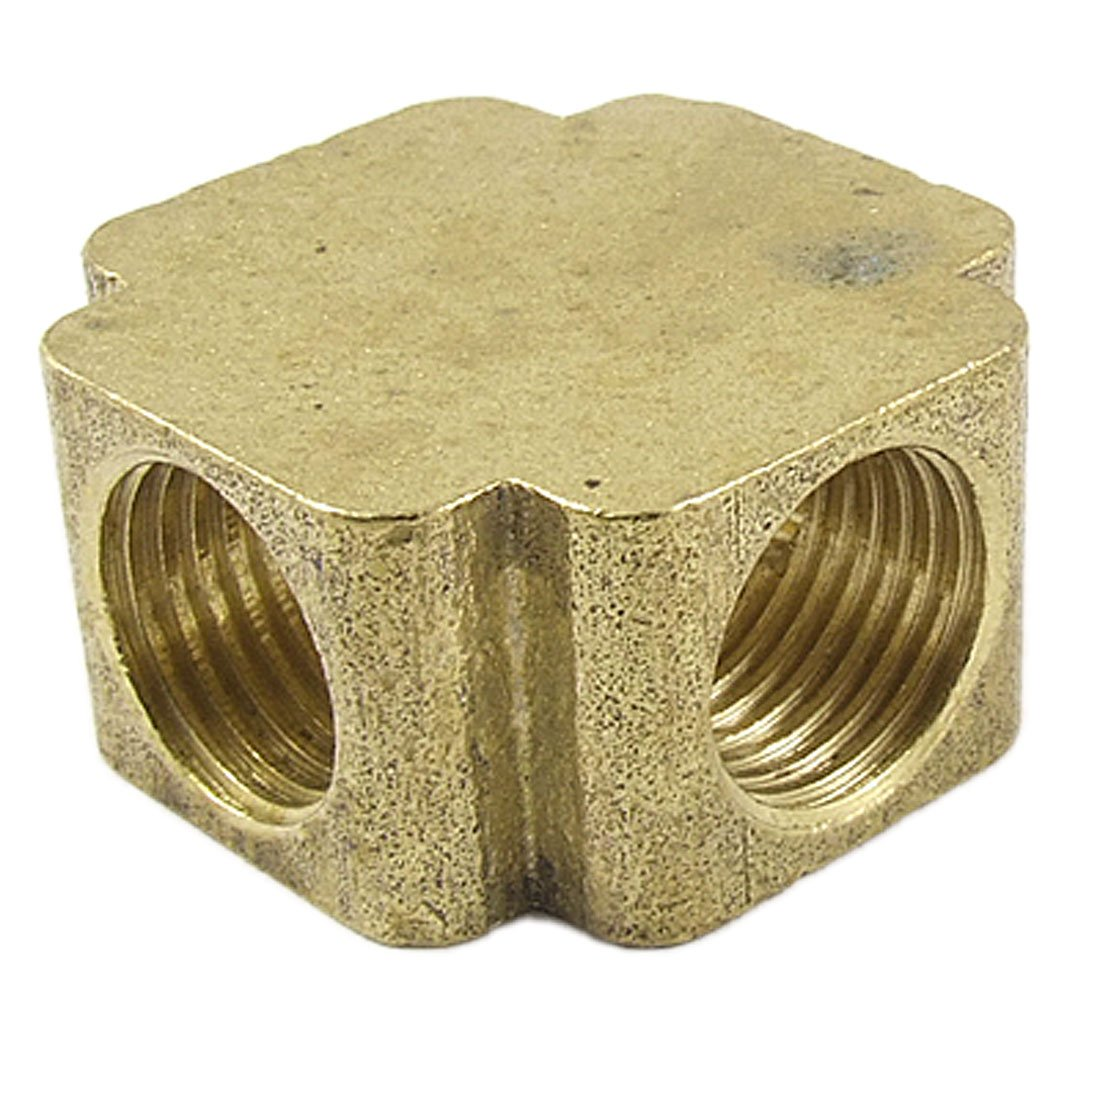 "Amico Brass 1/4"" NPT Female Thread 4 Ways Cross Connector Pipe Adapter Coupler Gold Tone"